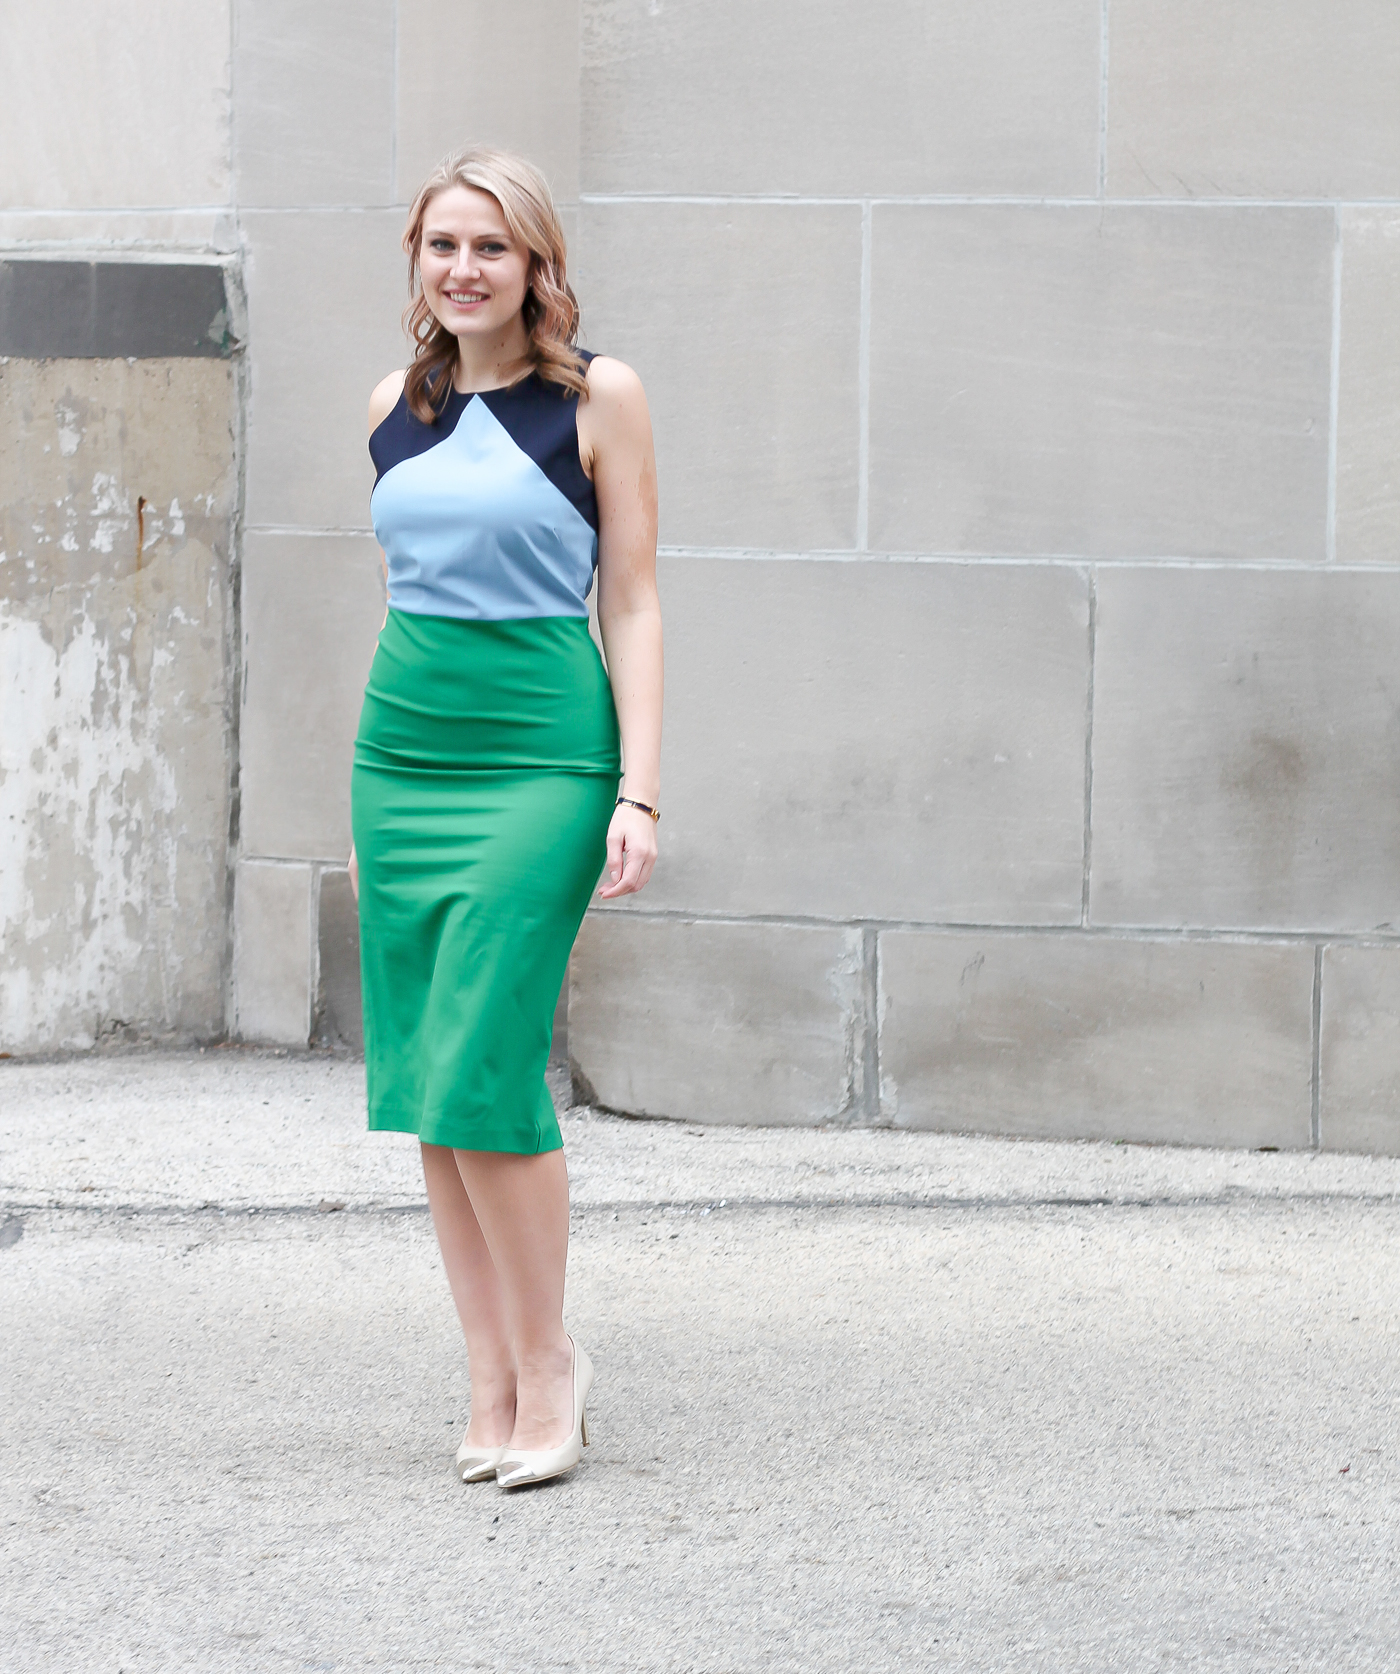 How to wear a colorblock dress to the office